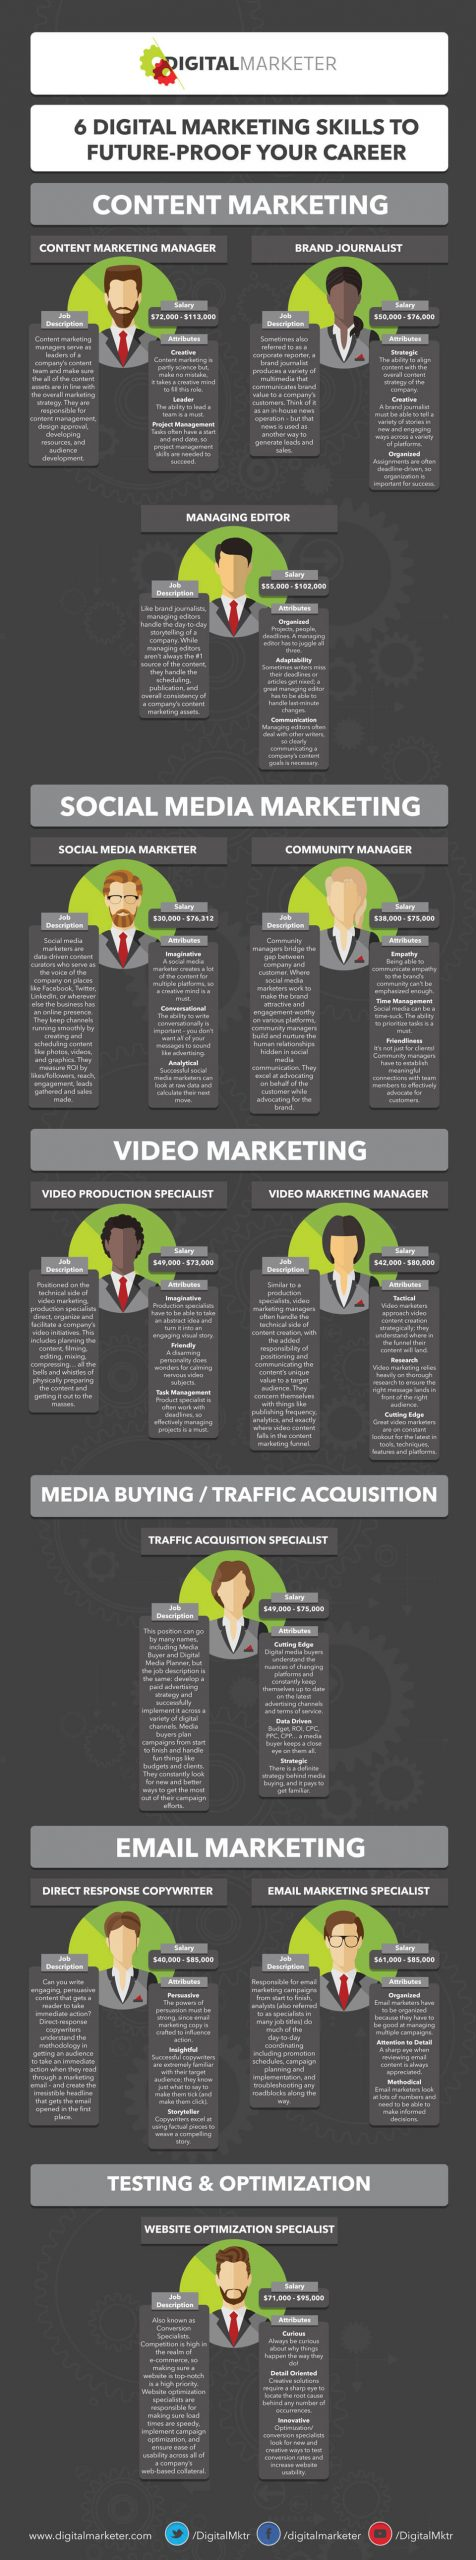 Digital Marketing Skills Infographic compressed.jpg